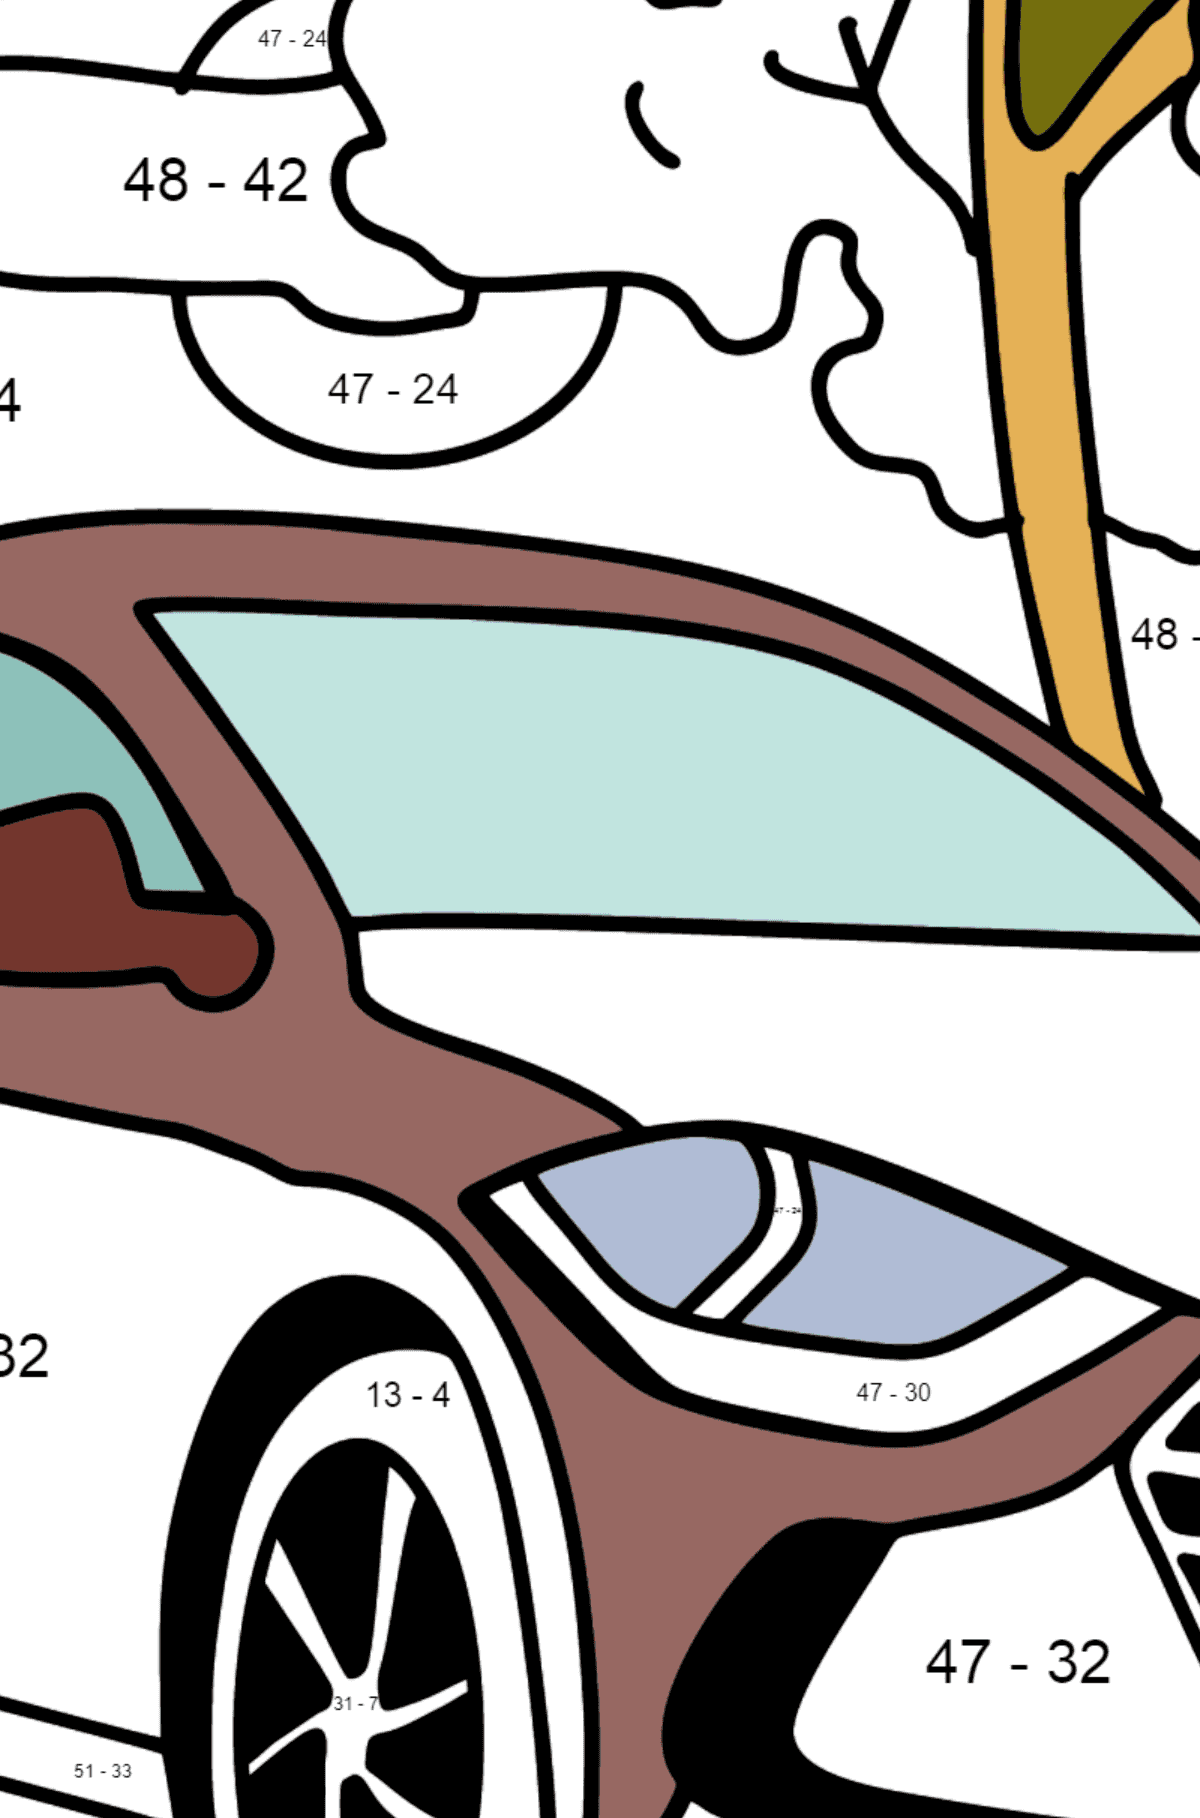 Hyundai car coloring page - Math Coloring - Subtraction for Kids